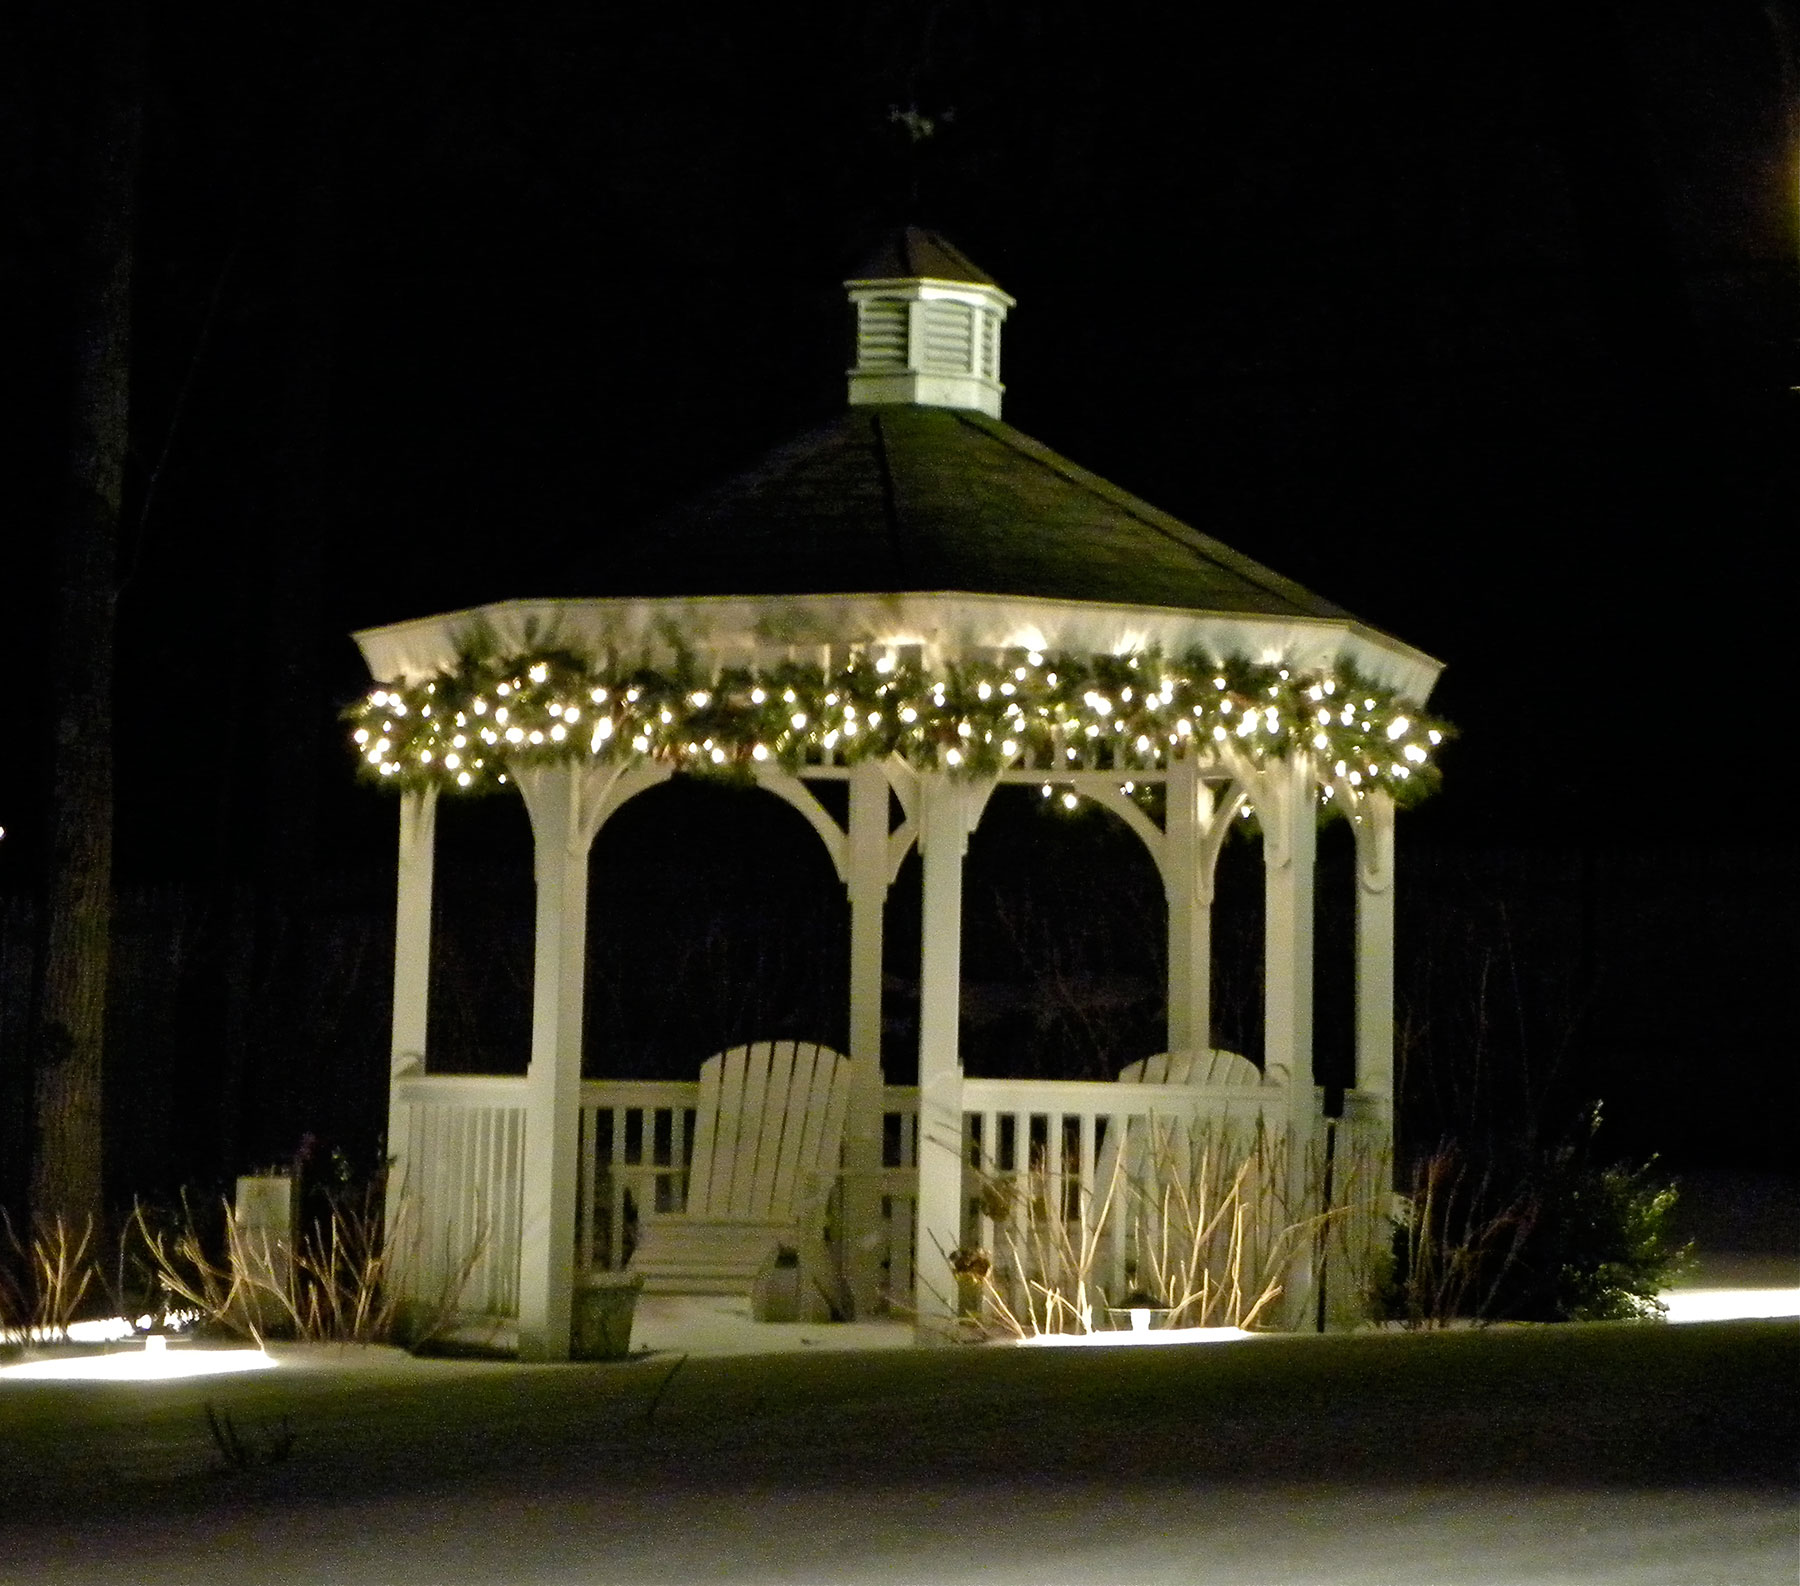 Outdoor Lighting Under Pergola: How To Add Lights To A Deck, Screened Porch Or Pergola By